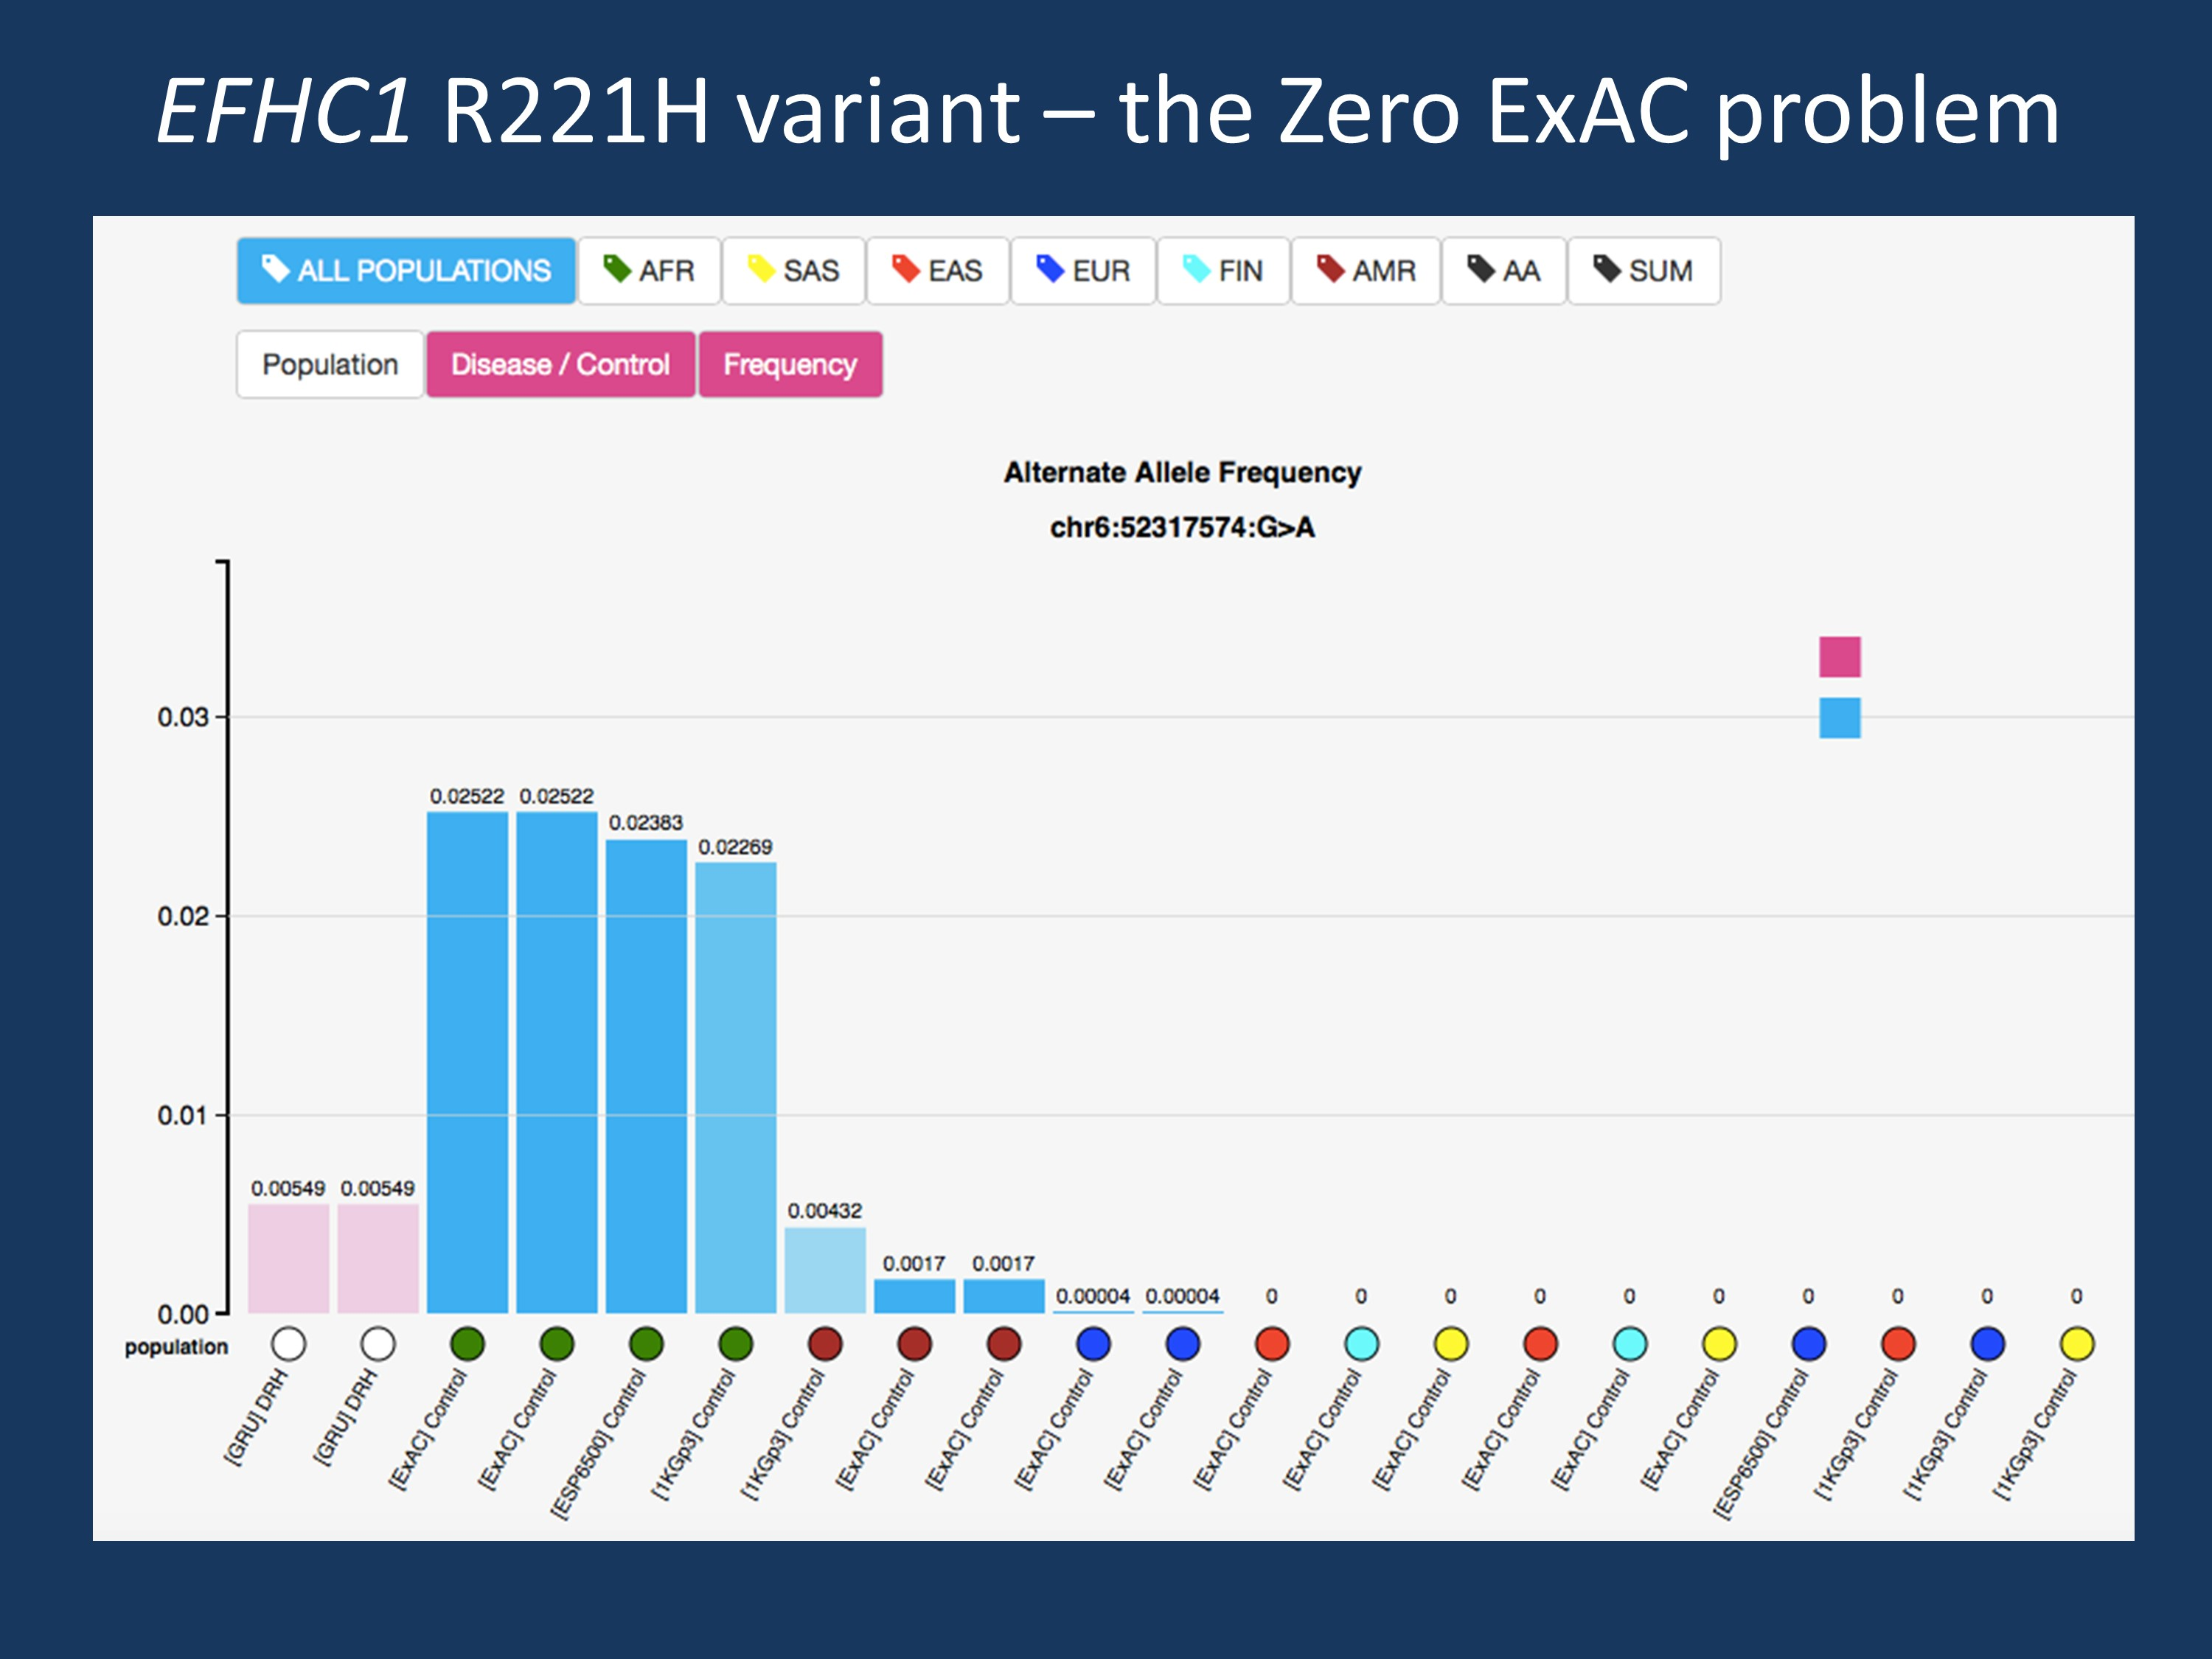 The Zero ExAC problem, exemplified by the EFHC1 R221H variant. When looking at smaller cohorts largely of European ancestry, this variant is absent, which is one of the prerequisites of calling this variant pathogenic. However, when compared to the full ESP6500 and ExAC dataset, we can see that this variant is actually present at a comparable frequency in individuals for African ancestry.